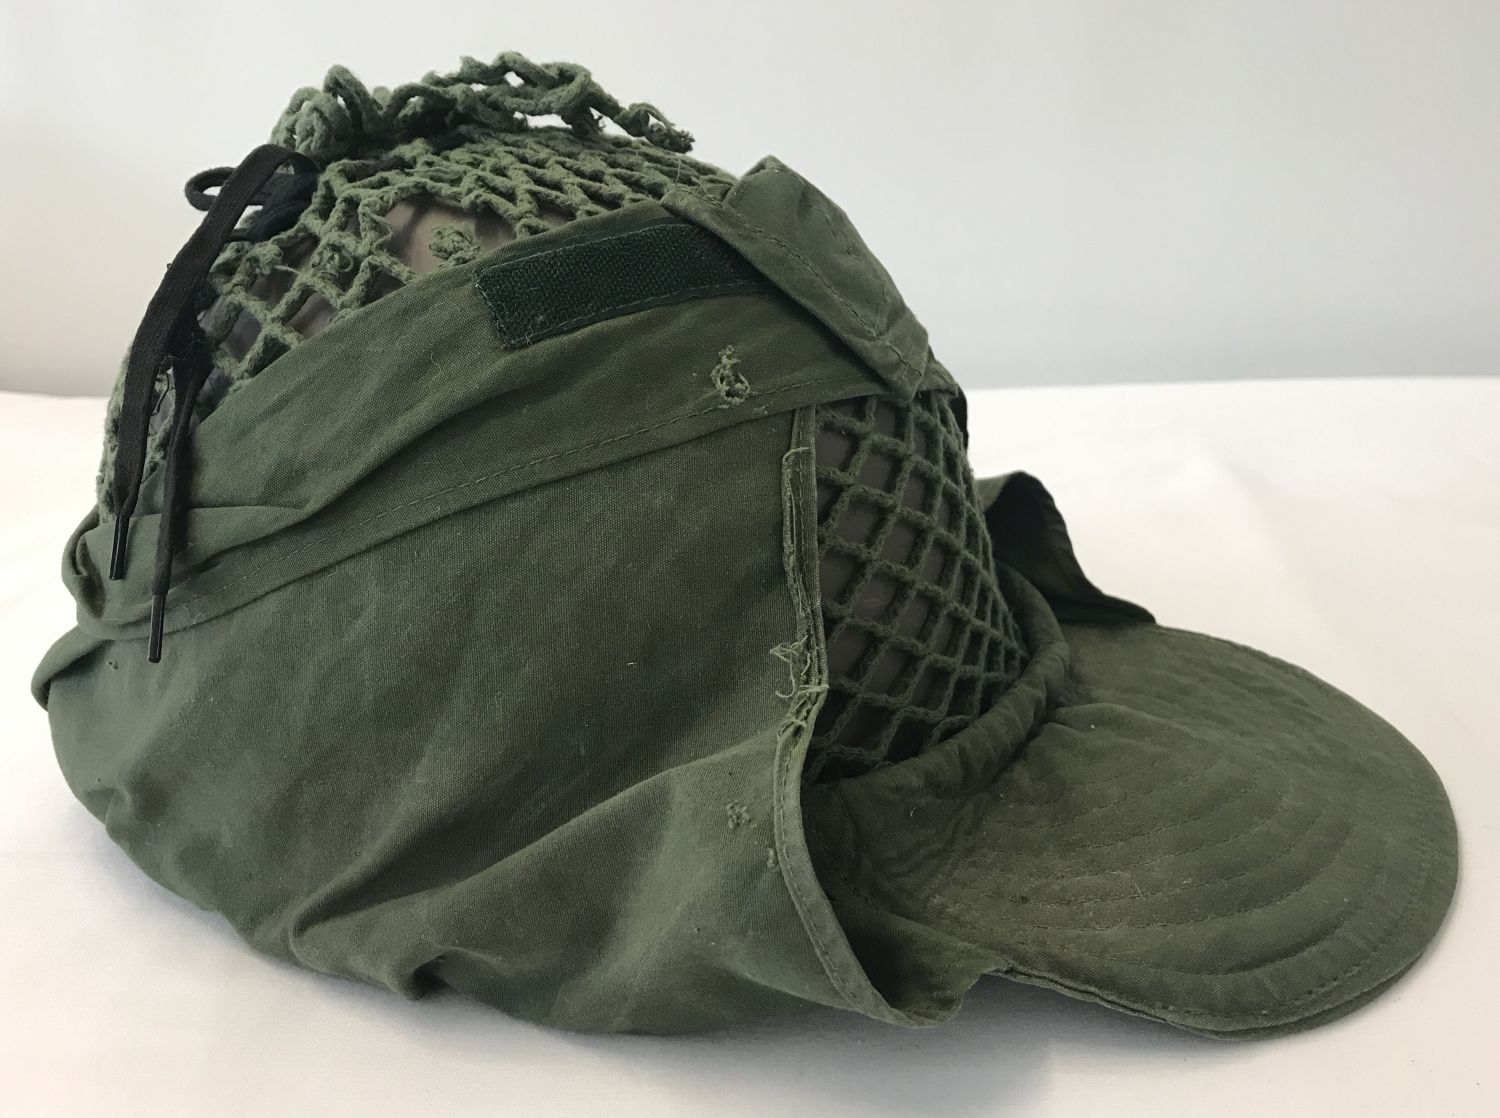 Lot 96 - A 1937 pattern Swedish helmet with canvas and string peaked cover.